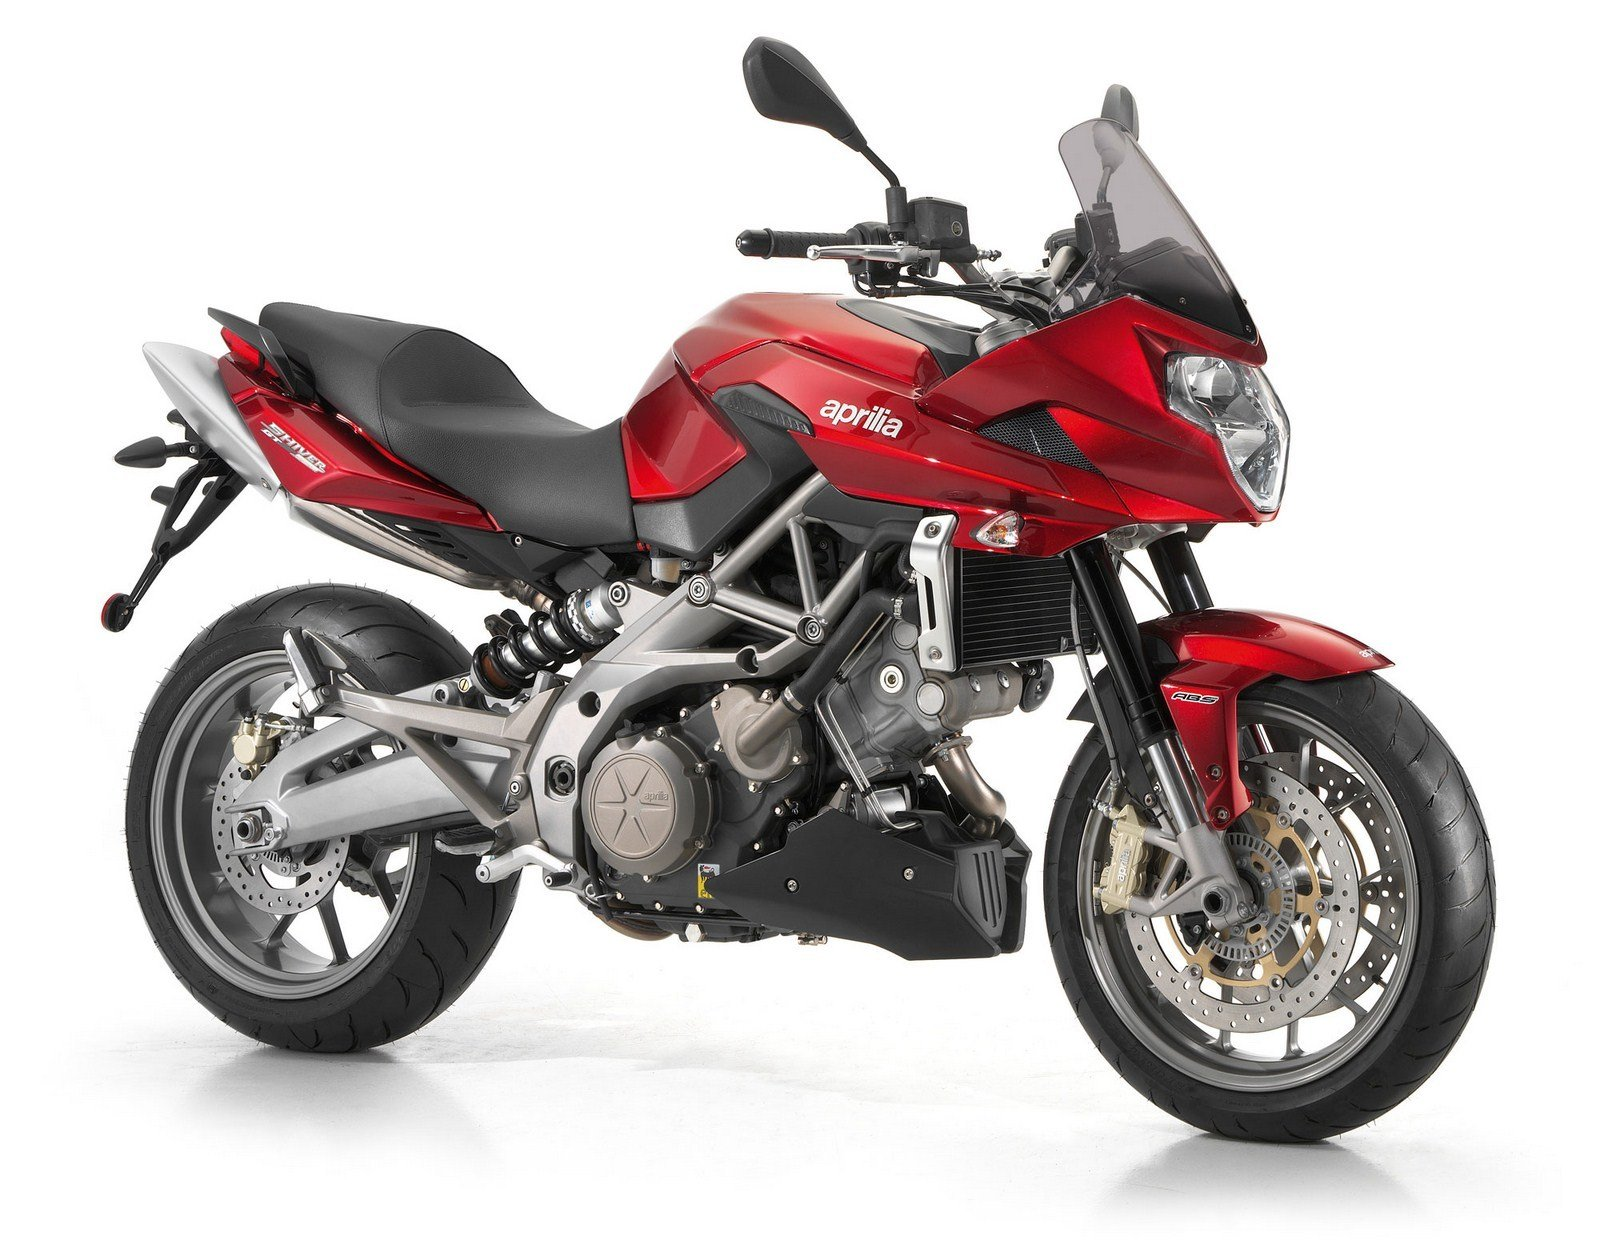 2012 aprilia shiver 750 gt abs review top speed. Black Bedroom Furniture Sets. Home Design Ideas